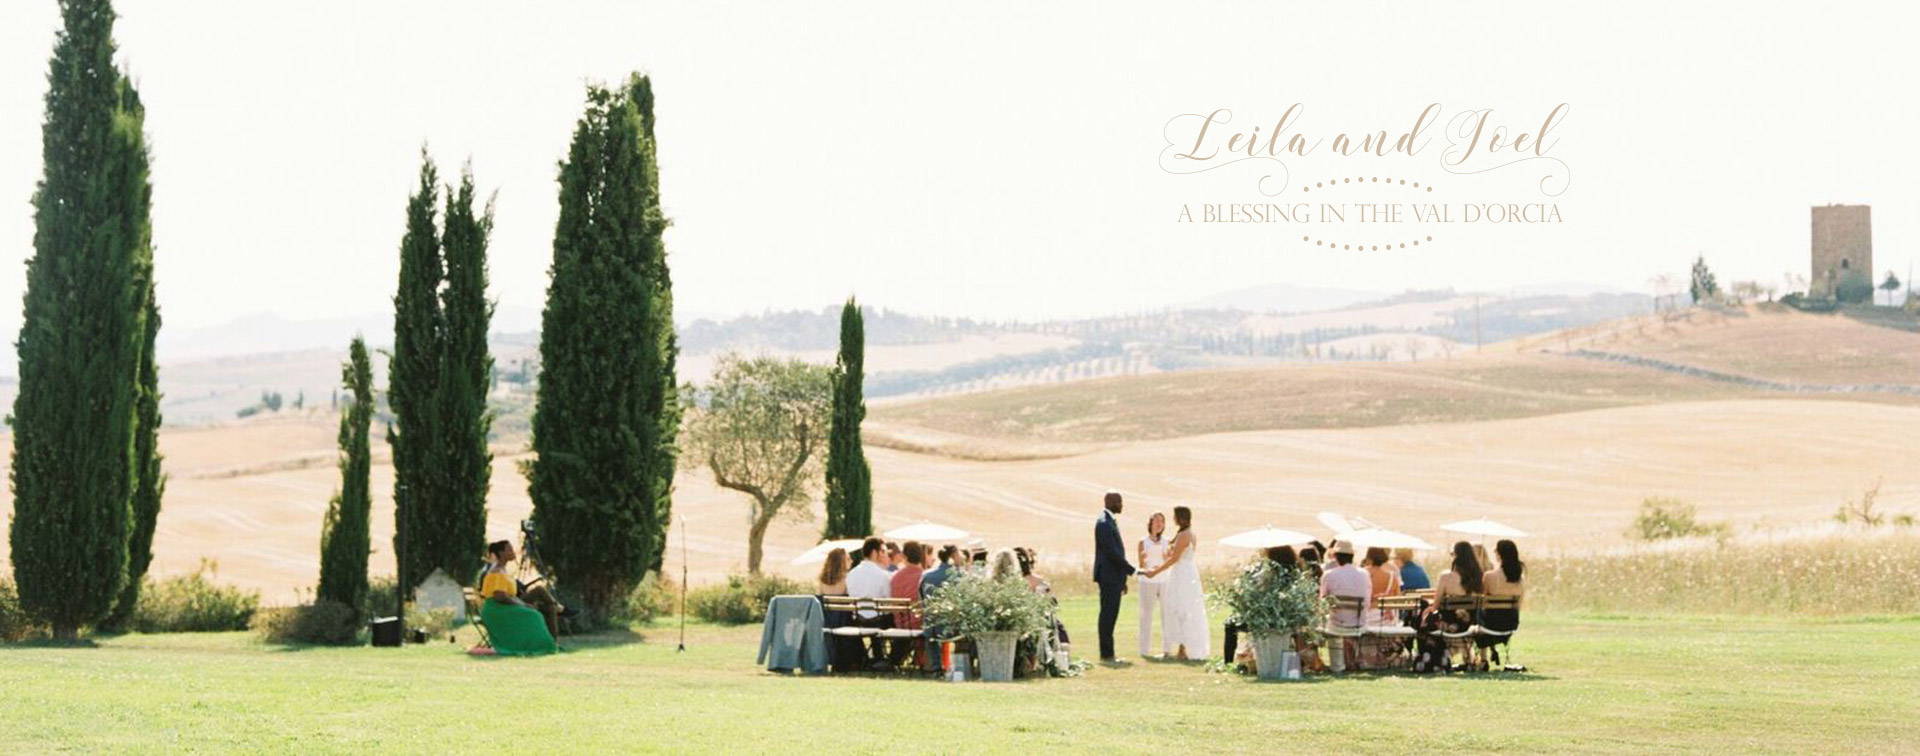 Stylish wedding Pienza Val D'Orcia blessing